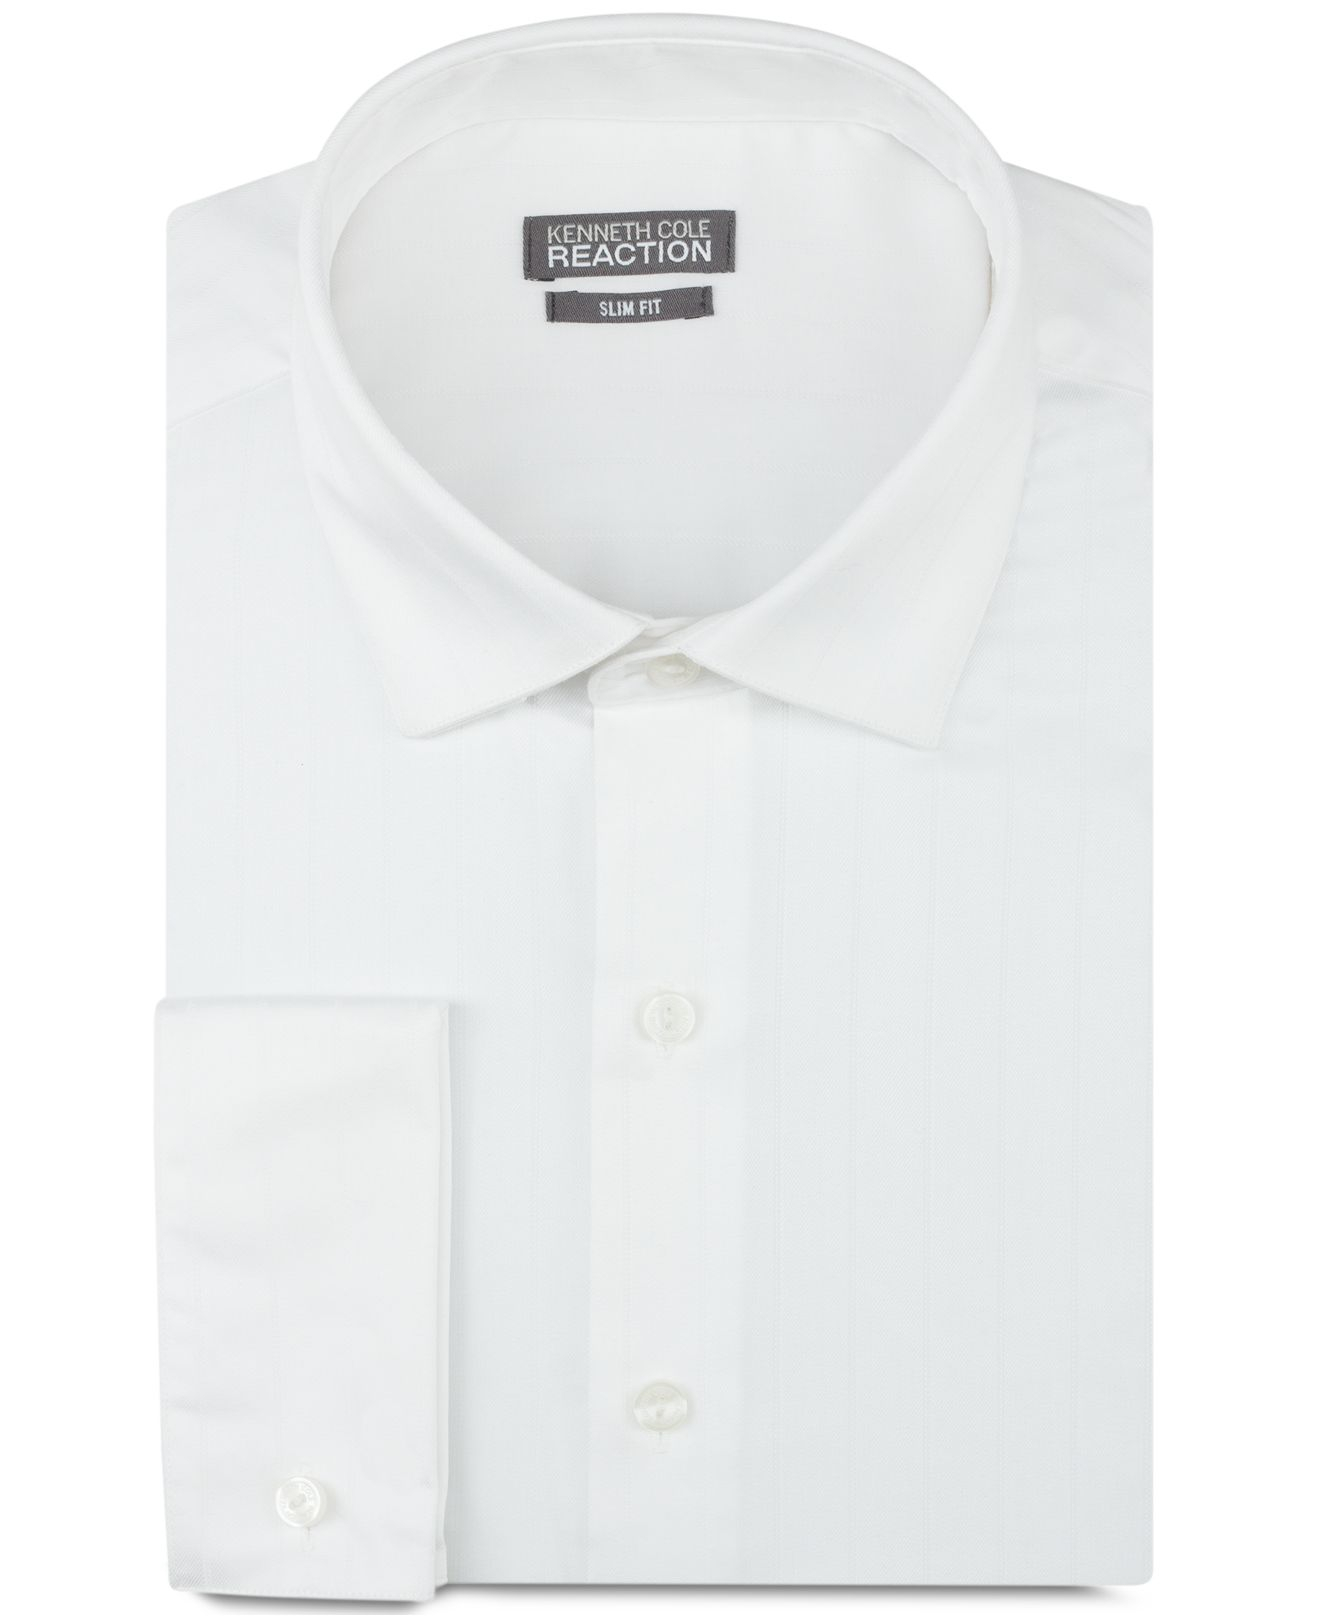 Lyst kenneth cole reaction slim fit textured solid White french cuff shirt slim fit